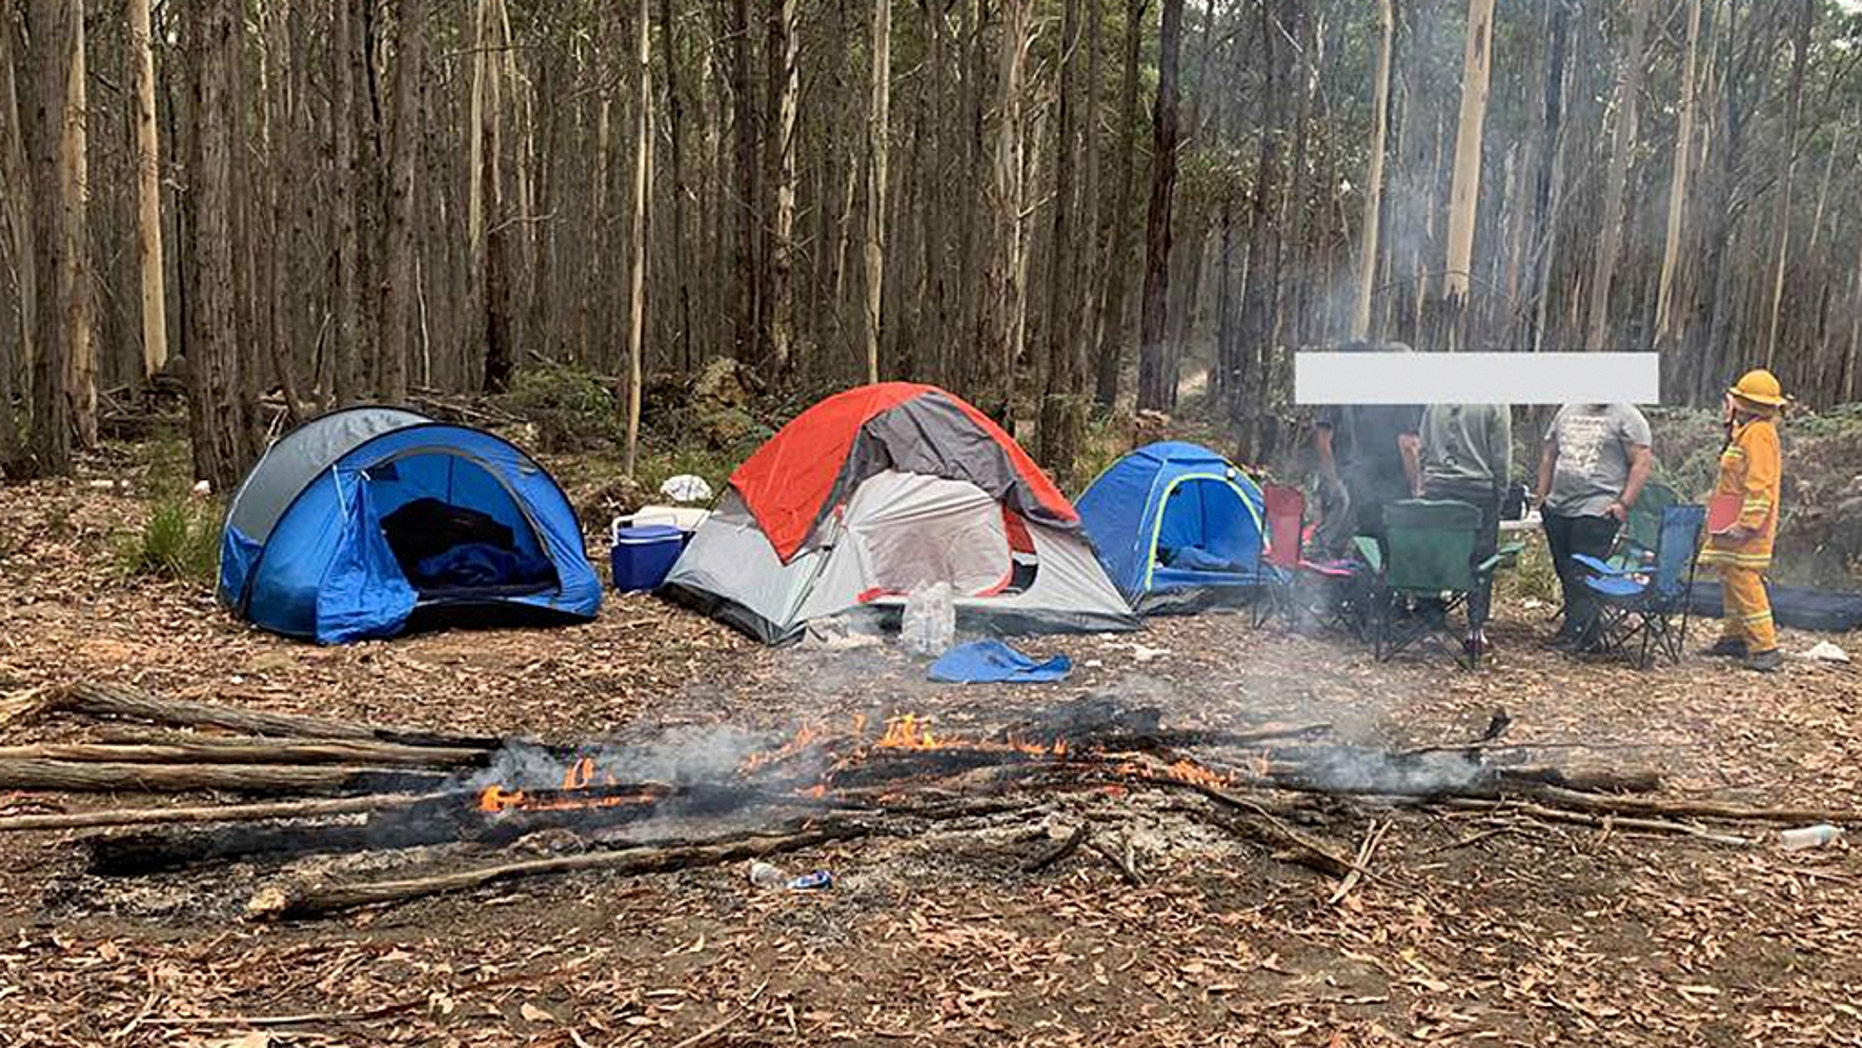 The Woodend Country Fire Authority (CFA) slammed a group of young men who were first-time campers in a Facebook post.